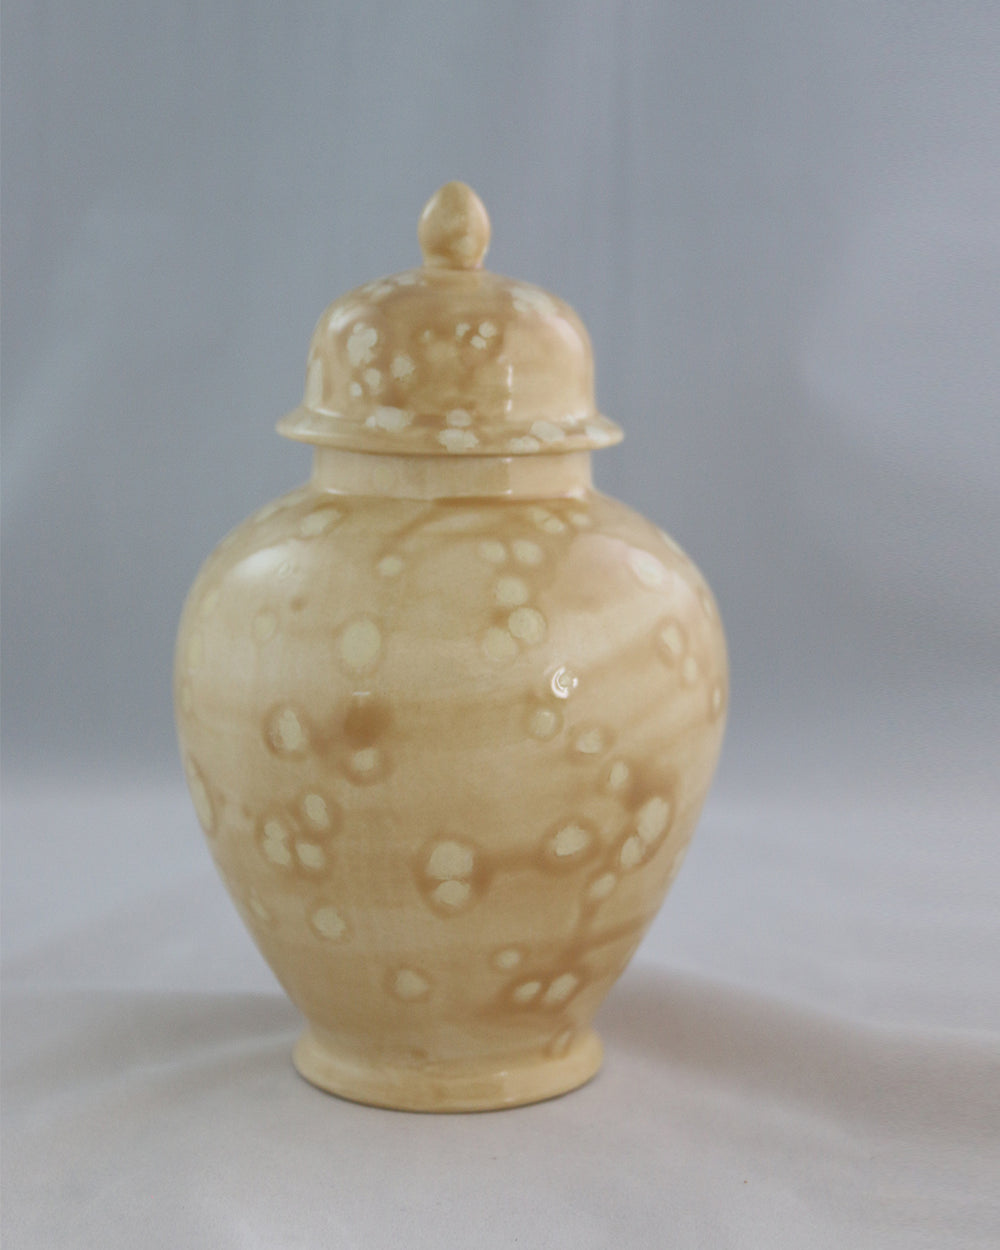 Hancrafted Ceramic Urn - Savannah - Medium